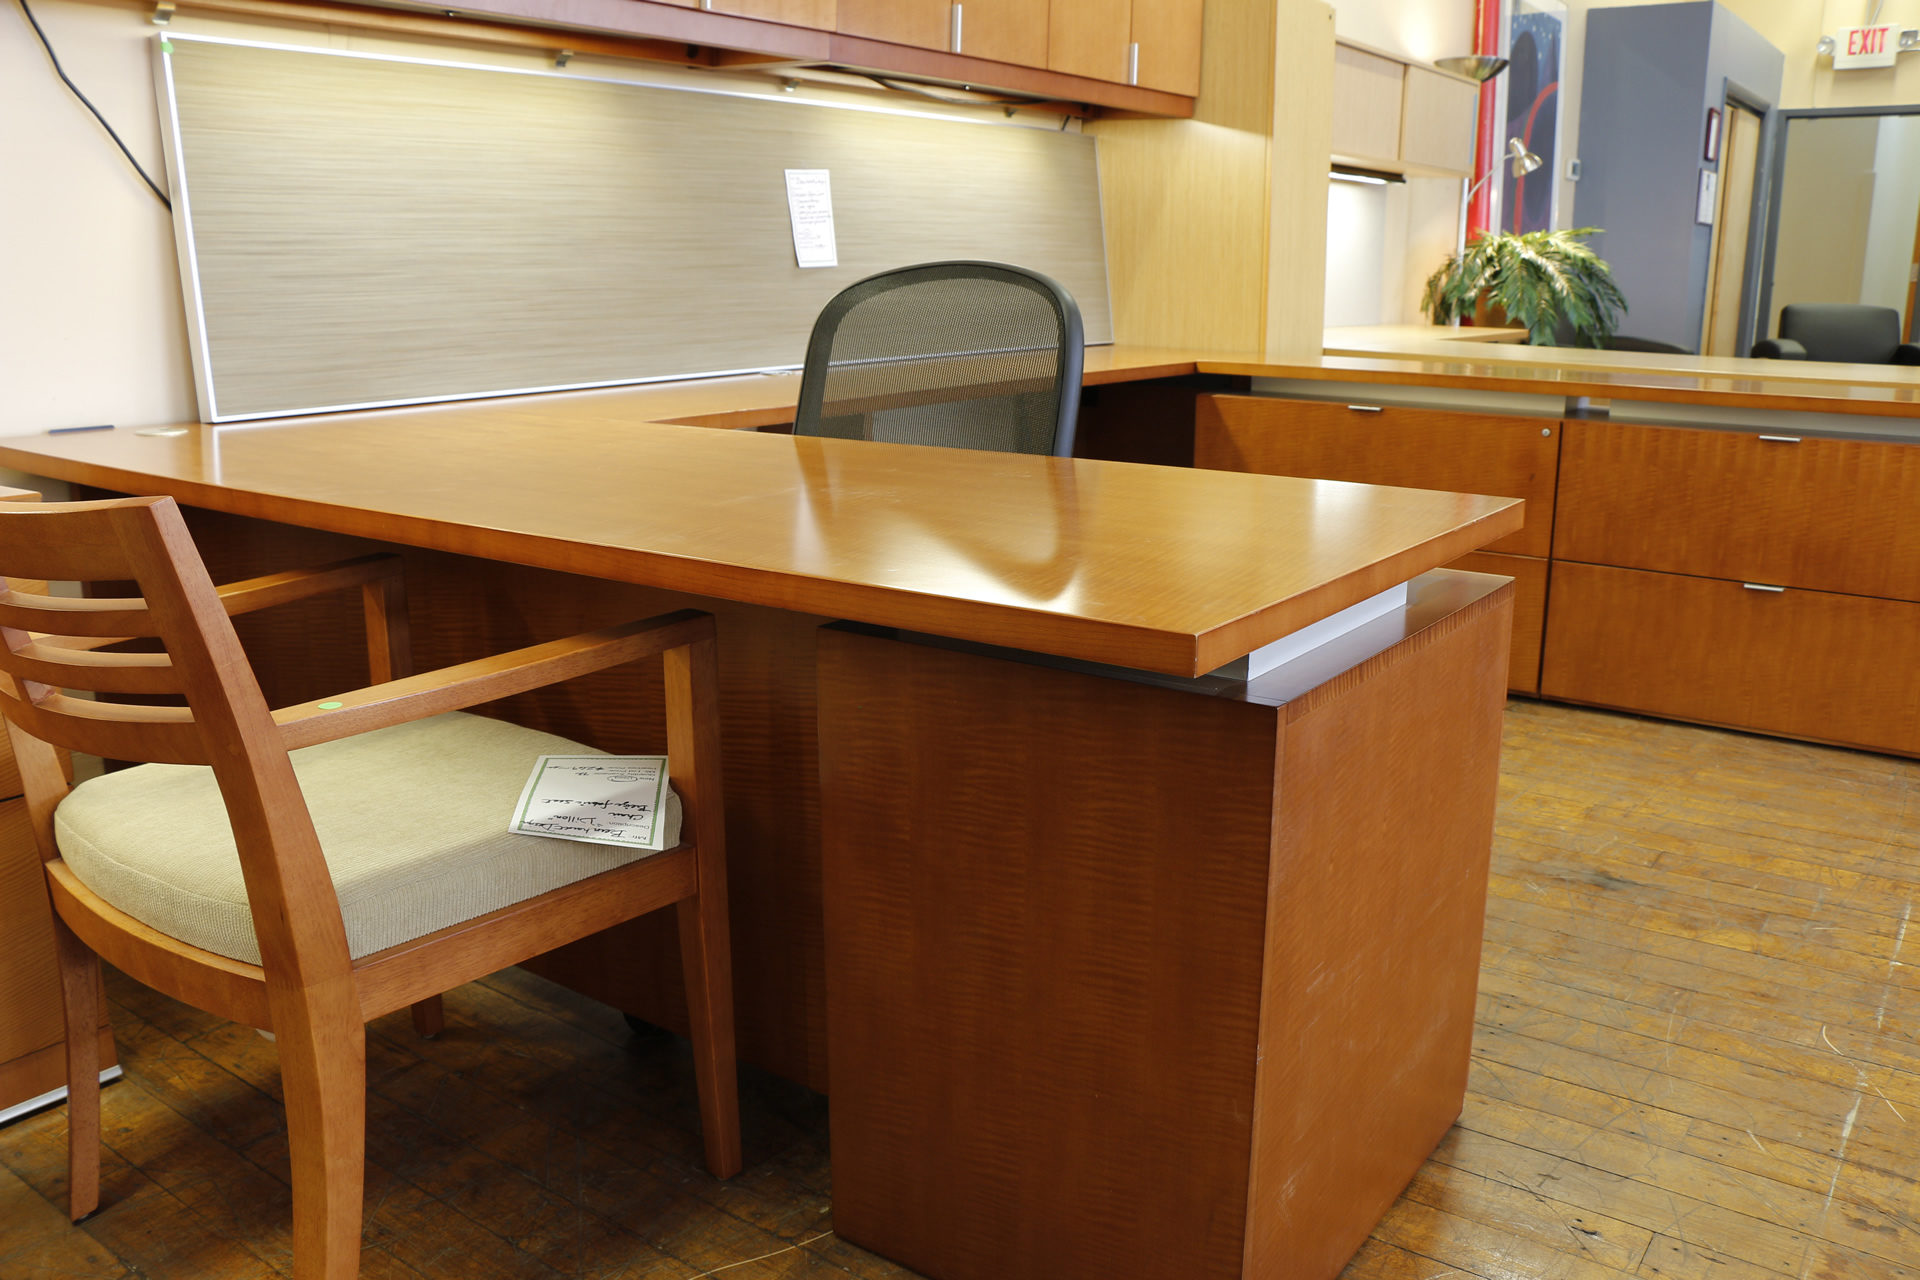 peartreeofficefurniture_peartreeofficefurniture_mg_4185.jpg